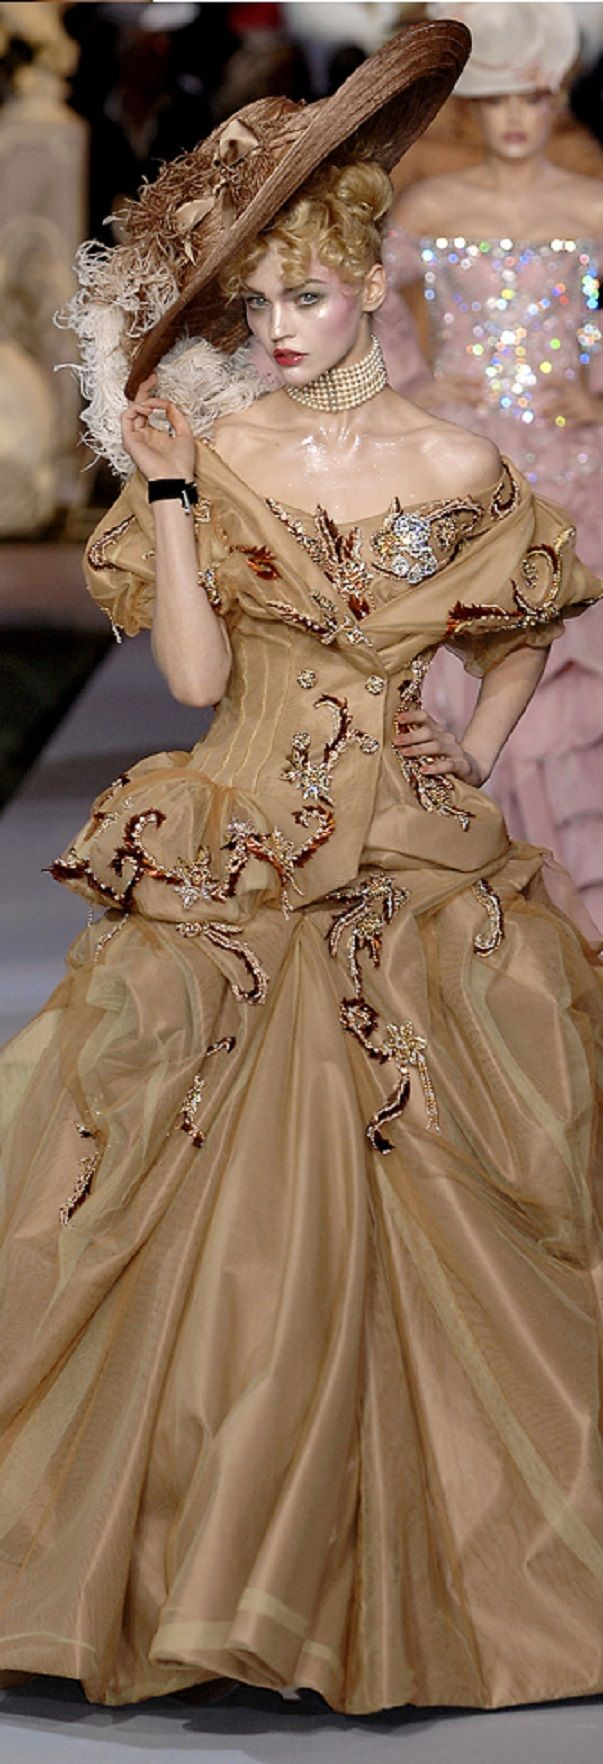 Christian Dior fall 2007 by John Galliano